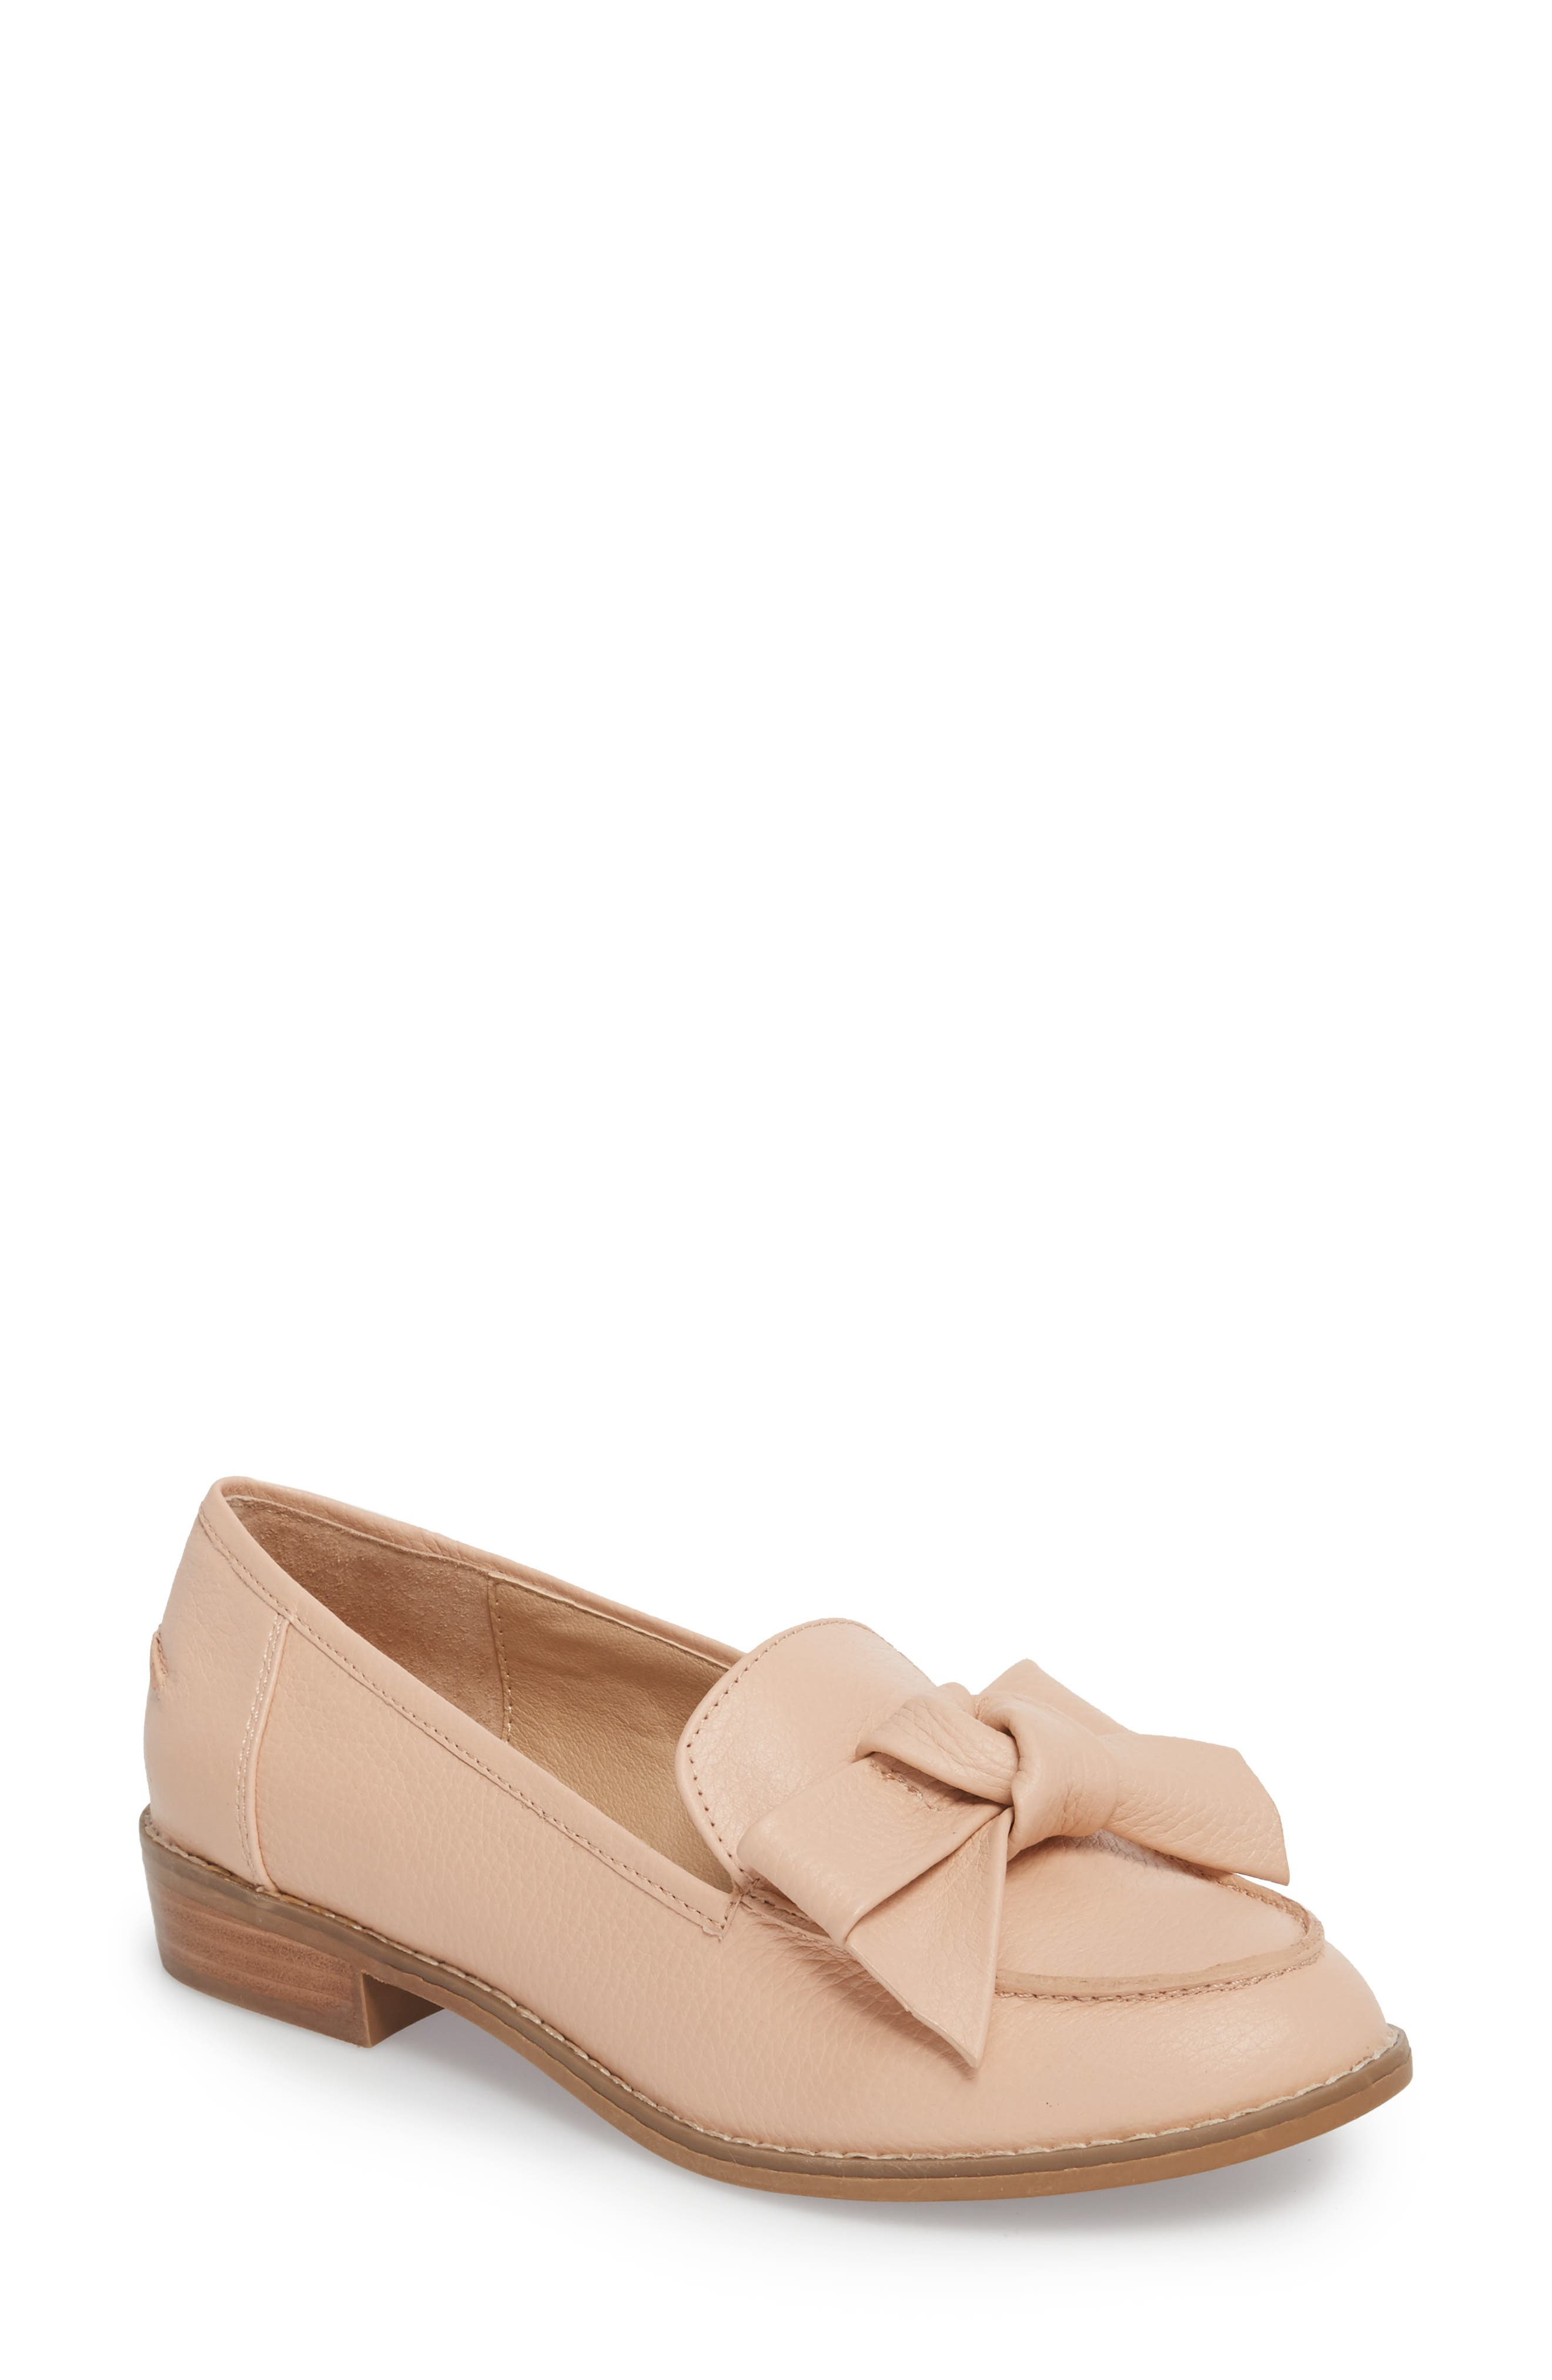 Beaux Loafer,                             Main thumbnail 1, color,                             Blush